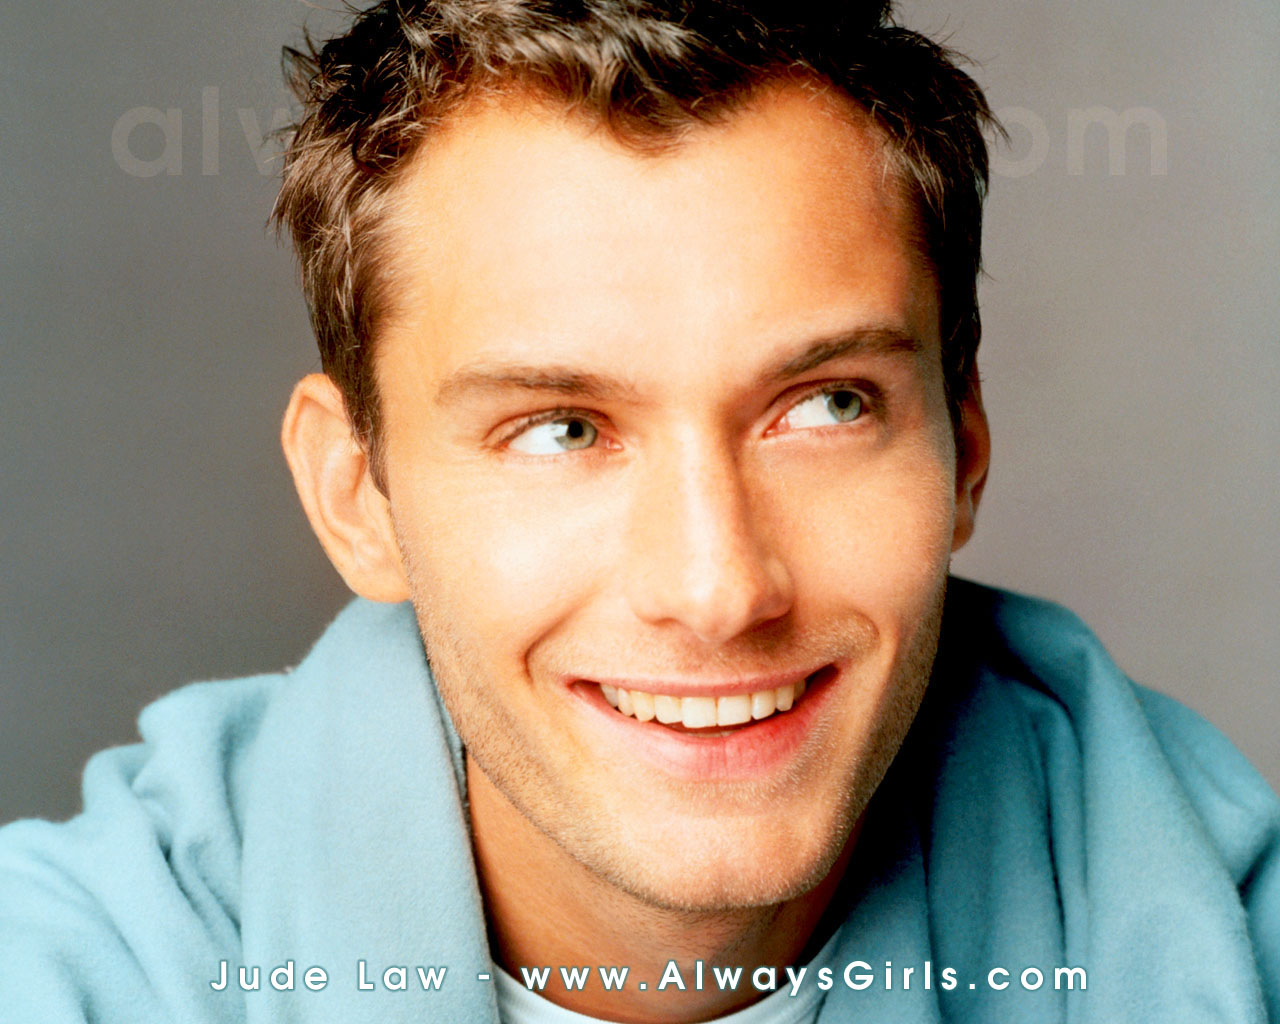 Jude Law - Wallpaper Hot